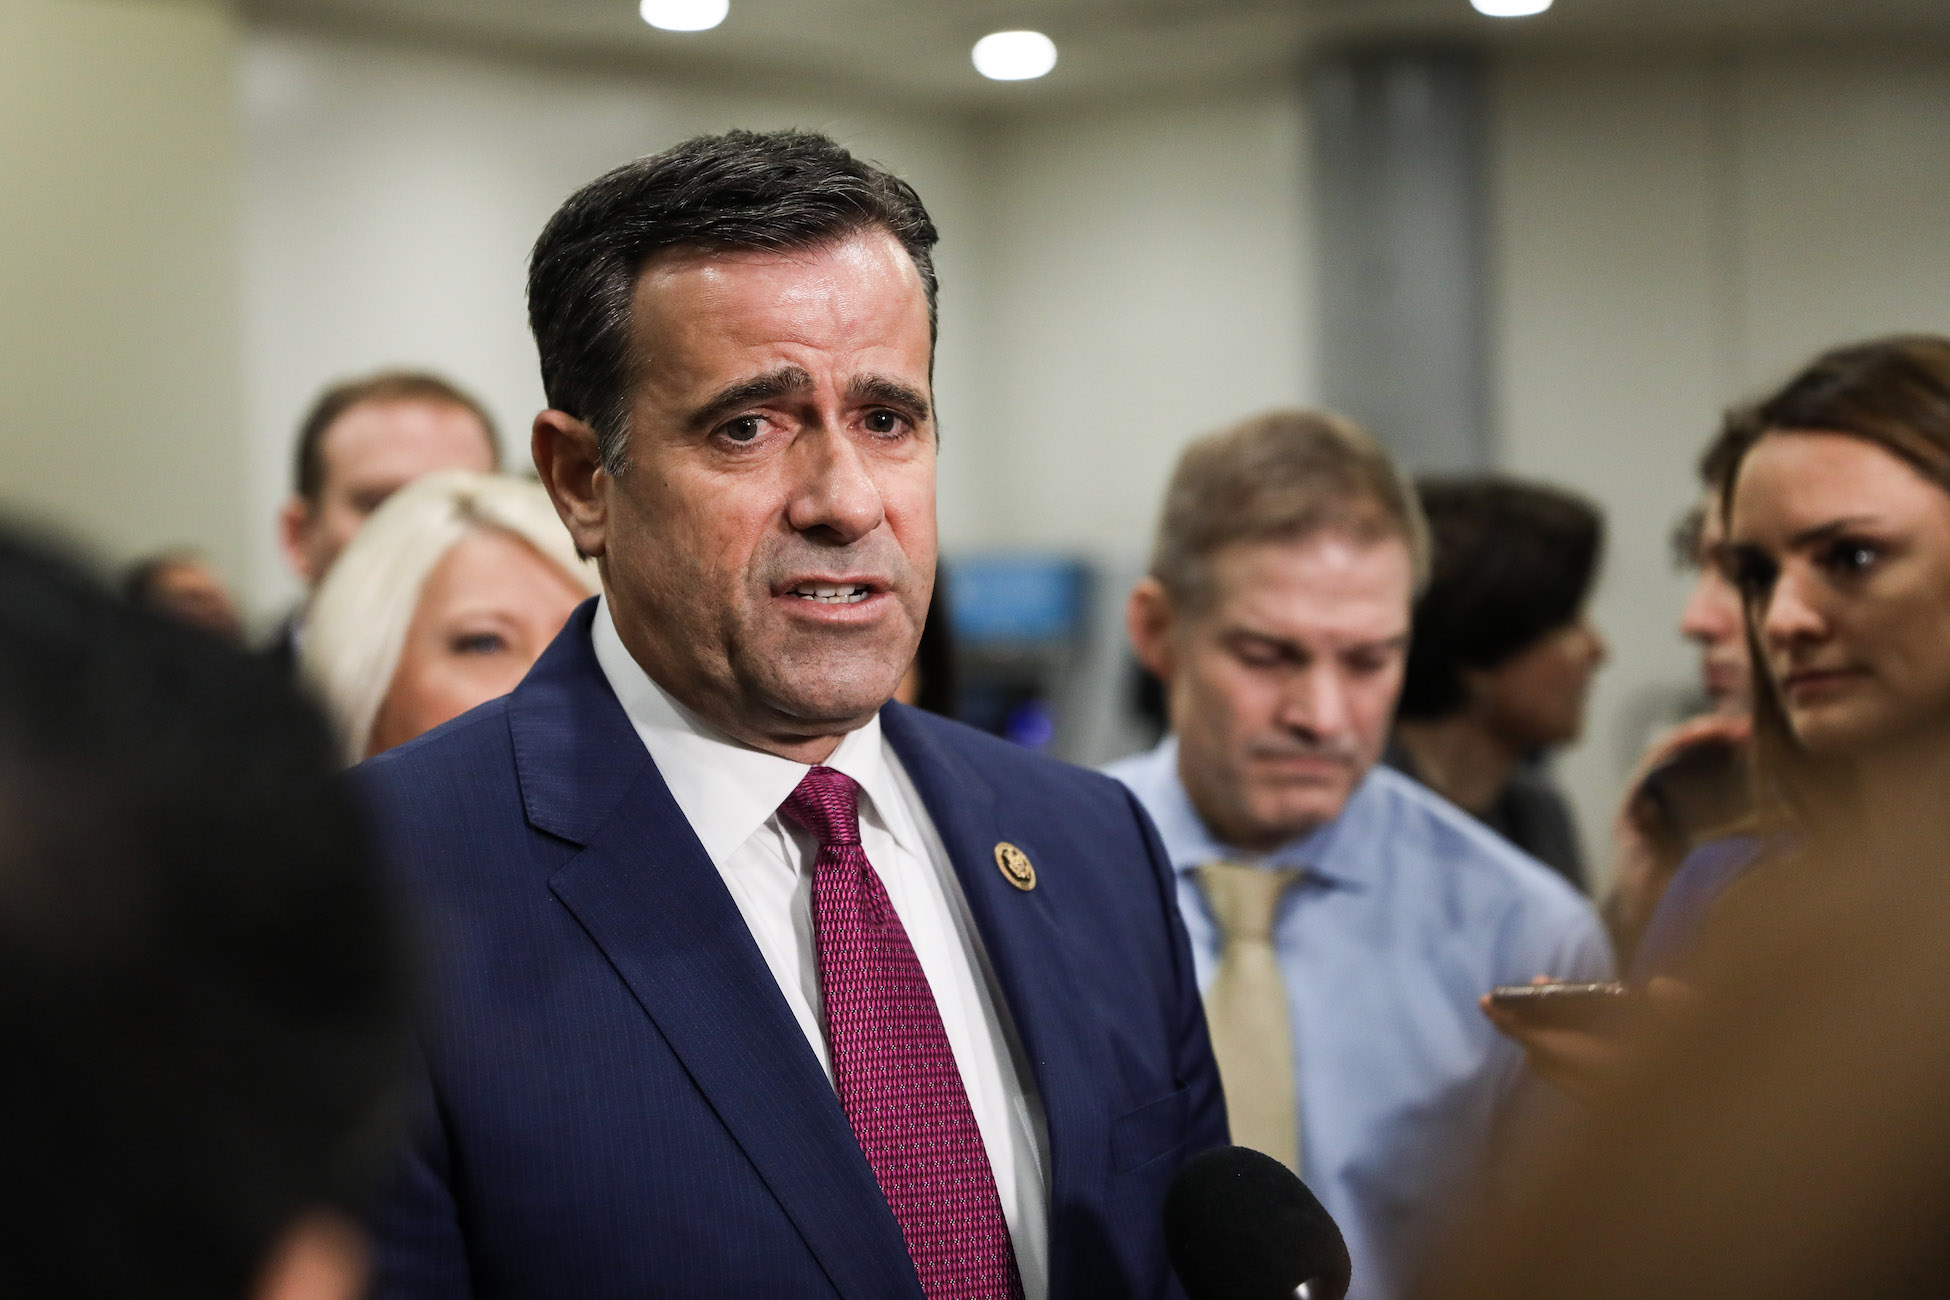 Ratcliffe Sworn in as Director of National Intelligence, Replacing Grenell